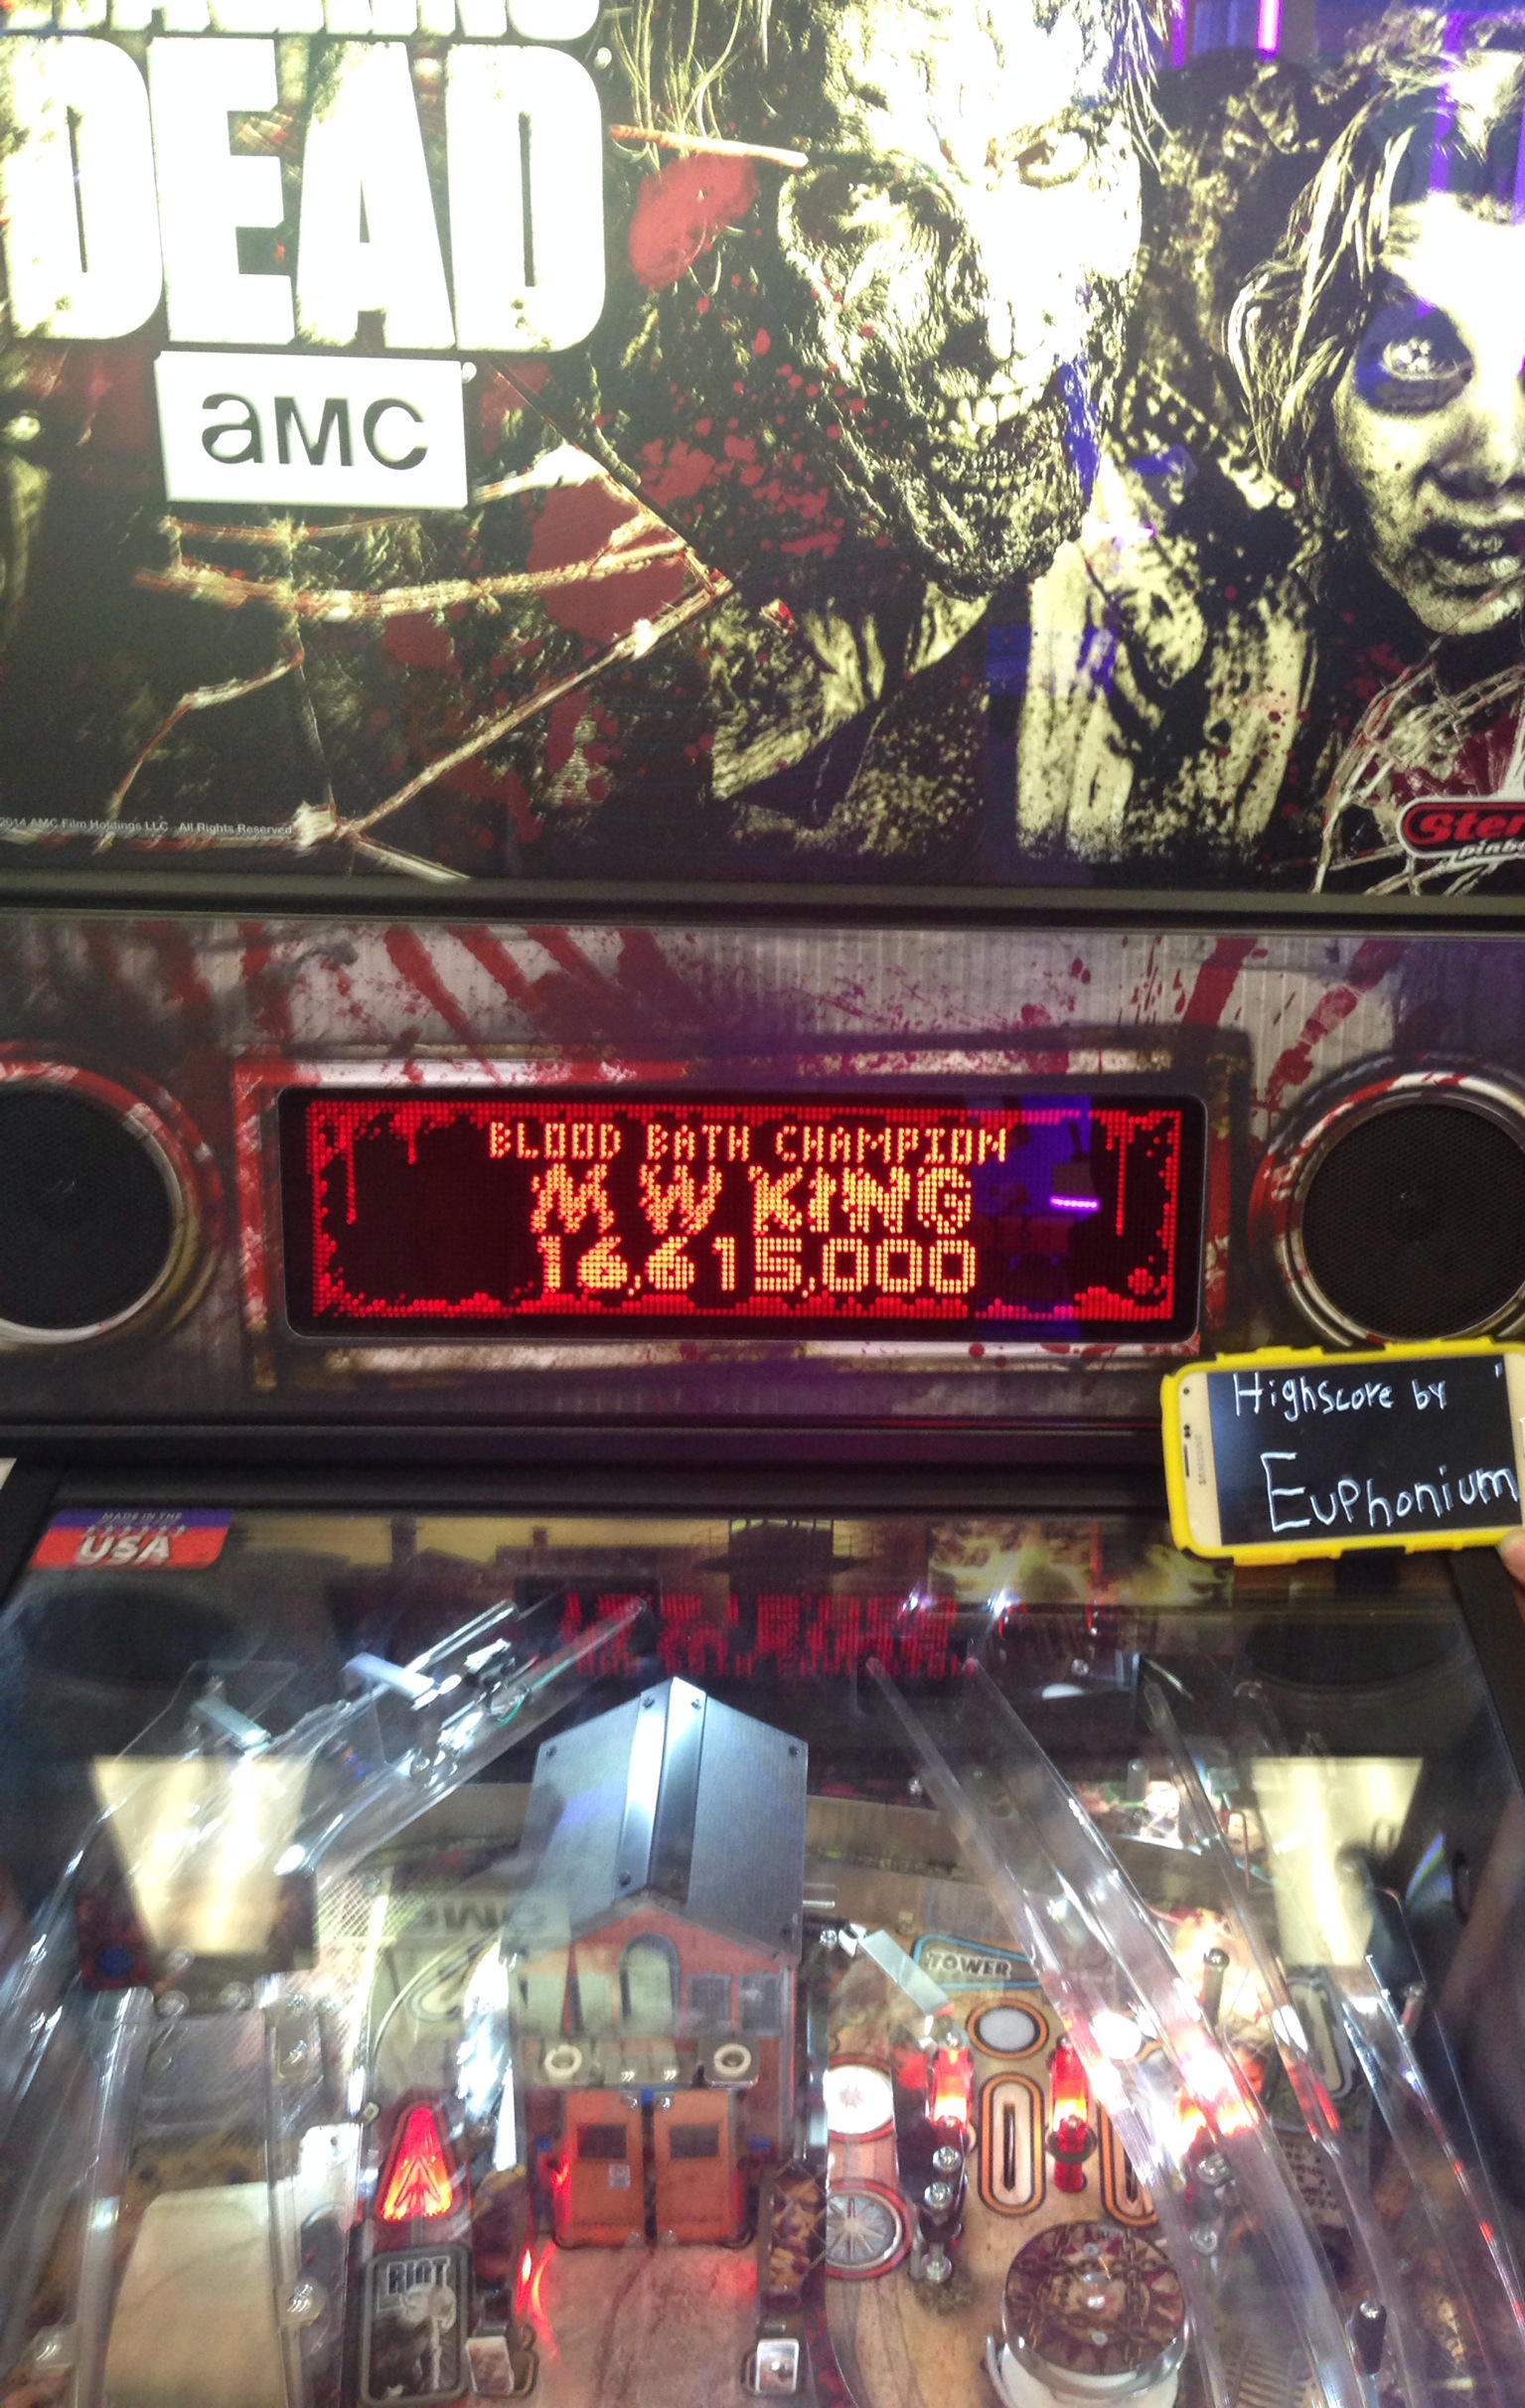 euphonium: The Walking Dead: Blood Bath Champion (Pinball Bonus Mode) 16,615,000 points on 2017-02-08 07:29:56